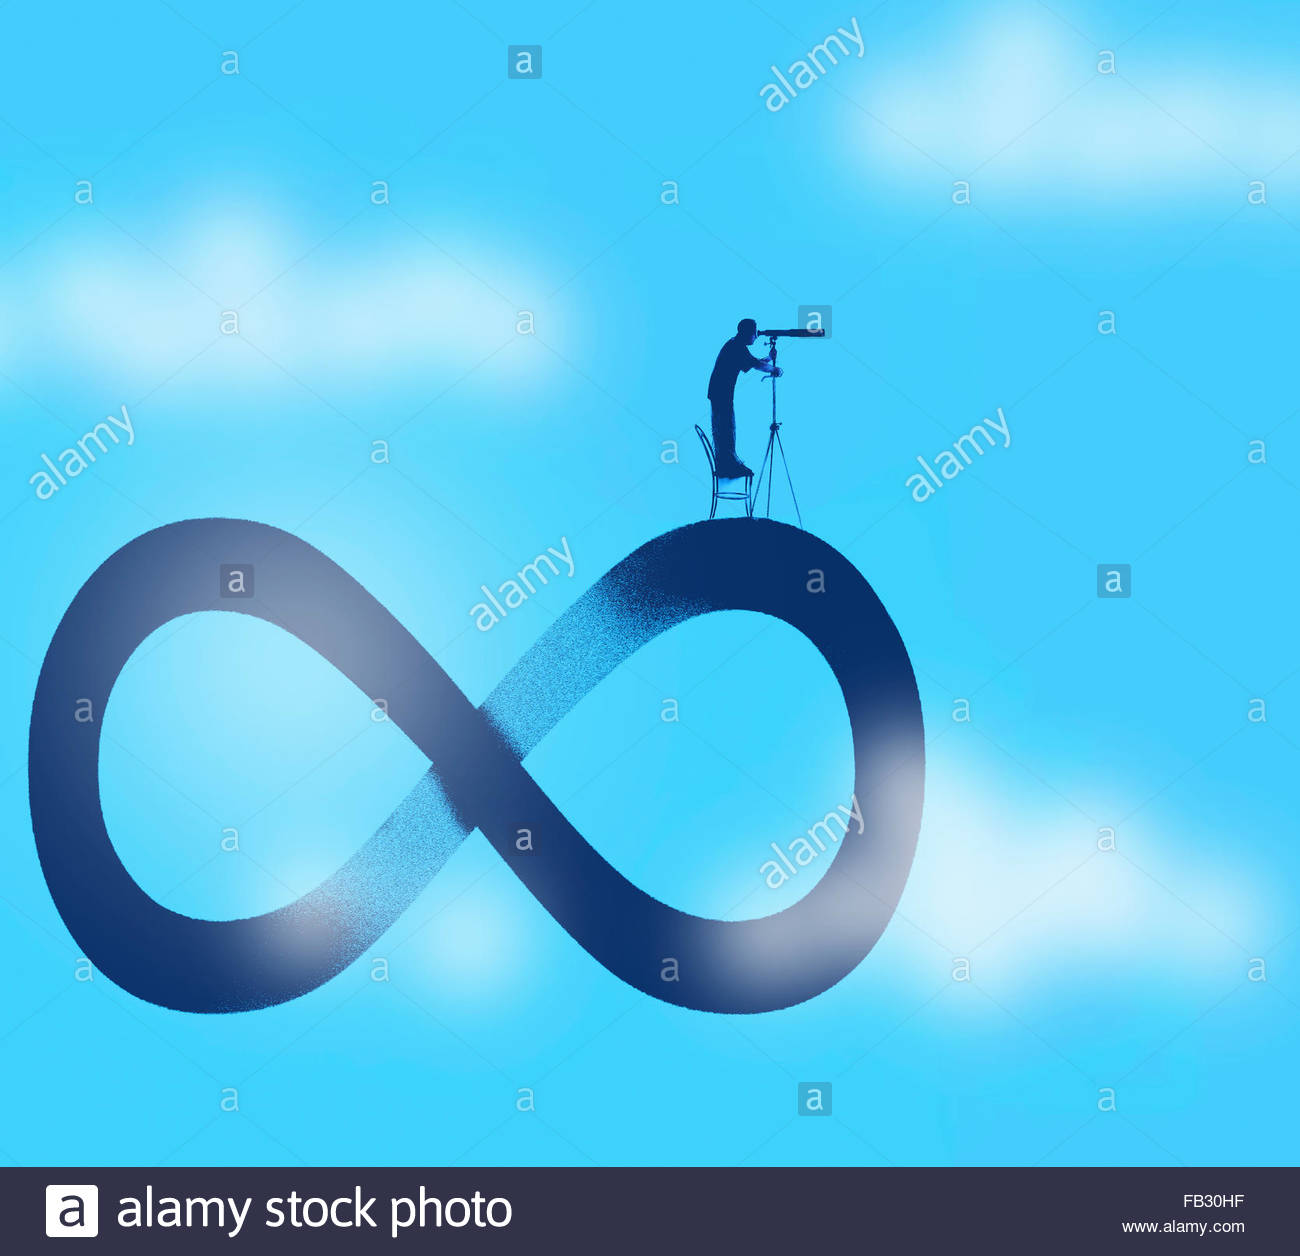 Man looking through telescope standing on top of infinity symbol - Stock Image